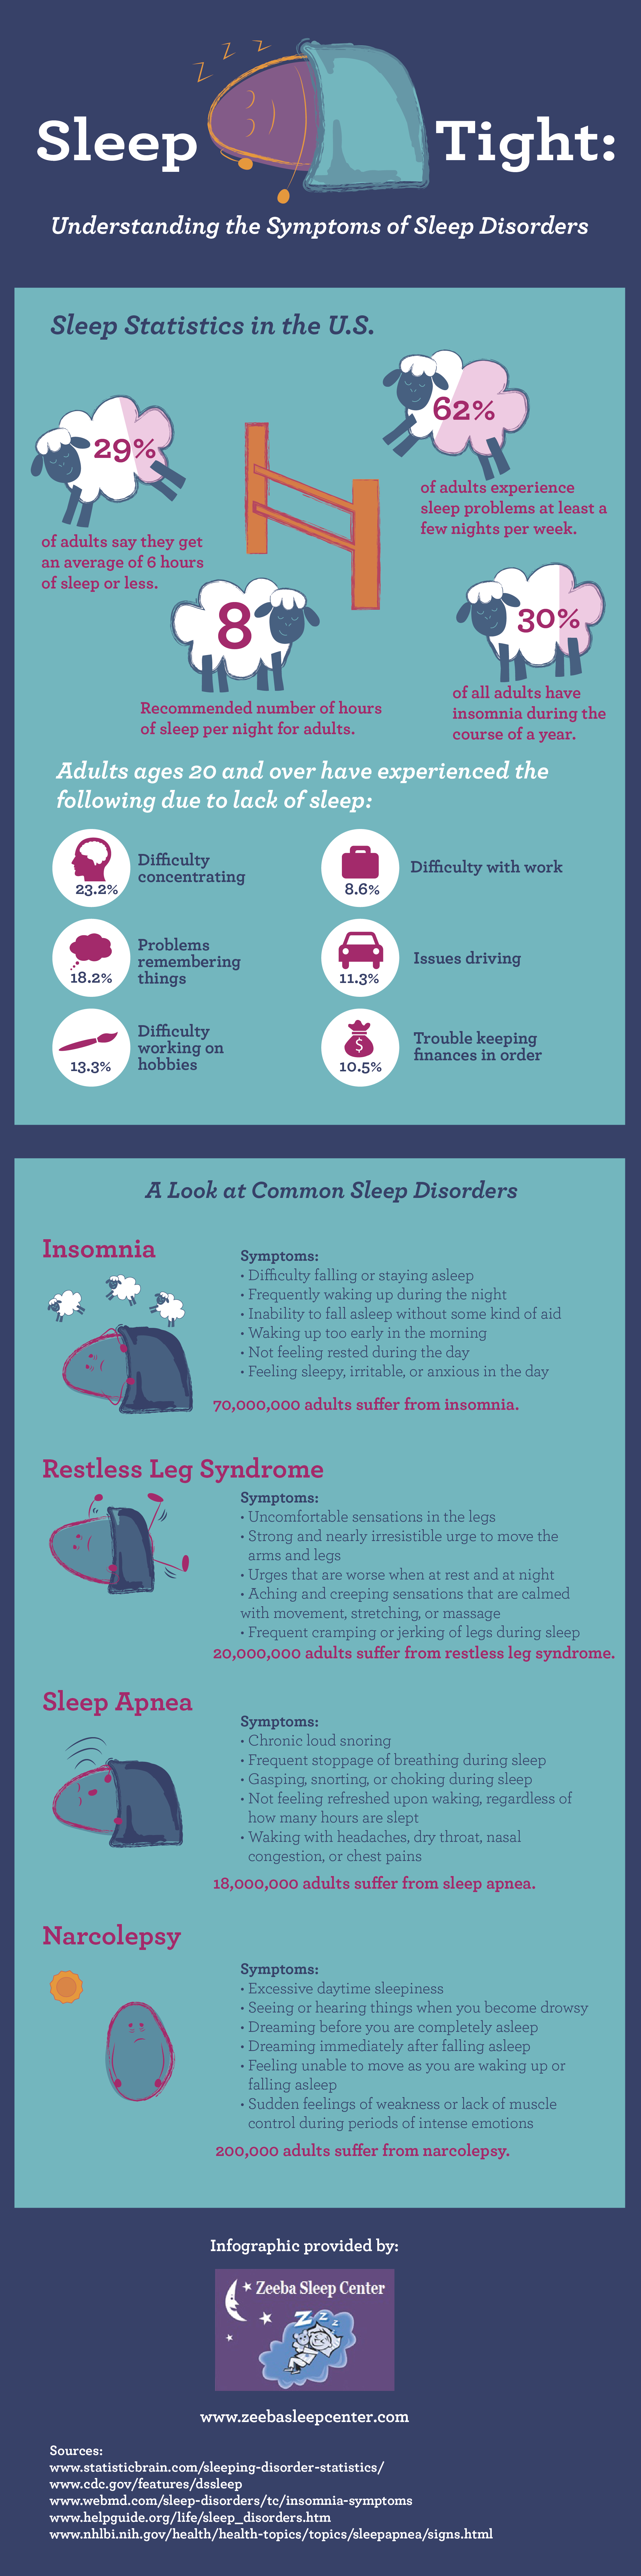 Facts about Sleep and Sleep Disorders